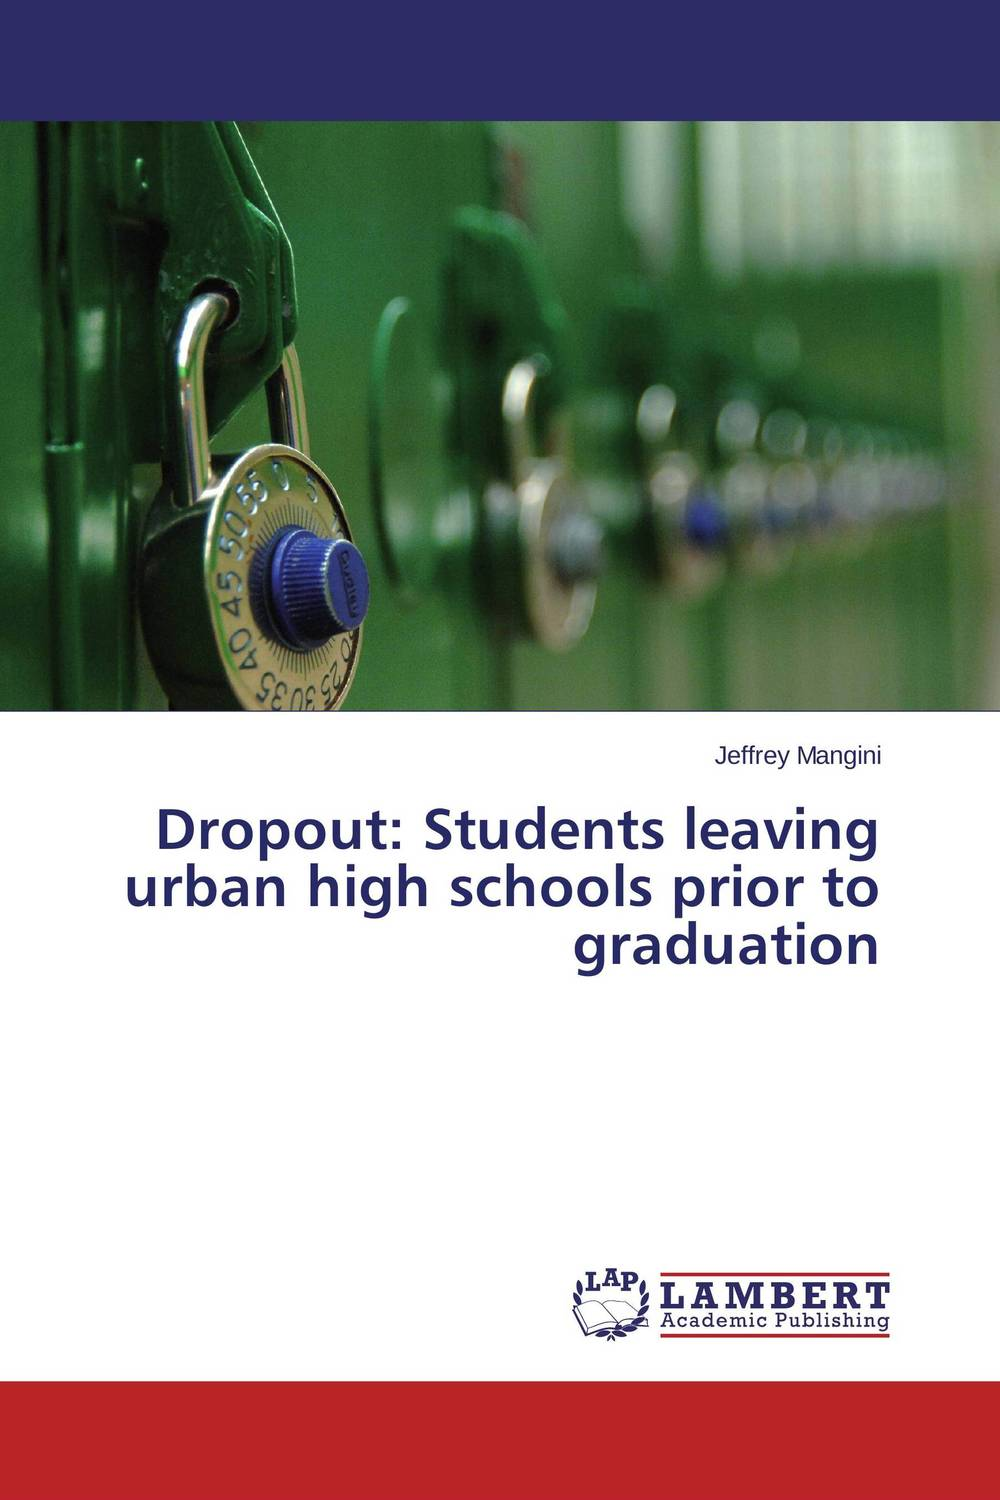 Dropout: Students leaving urban high schools prior to graduation role of school leadership in promoting moral integrity among students